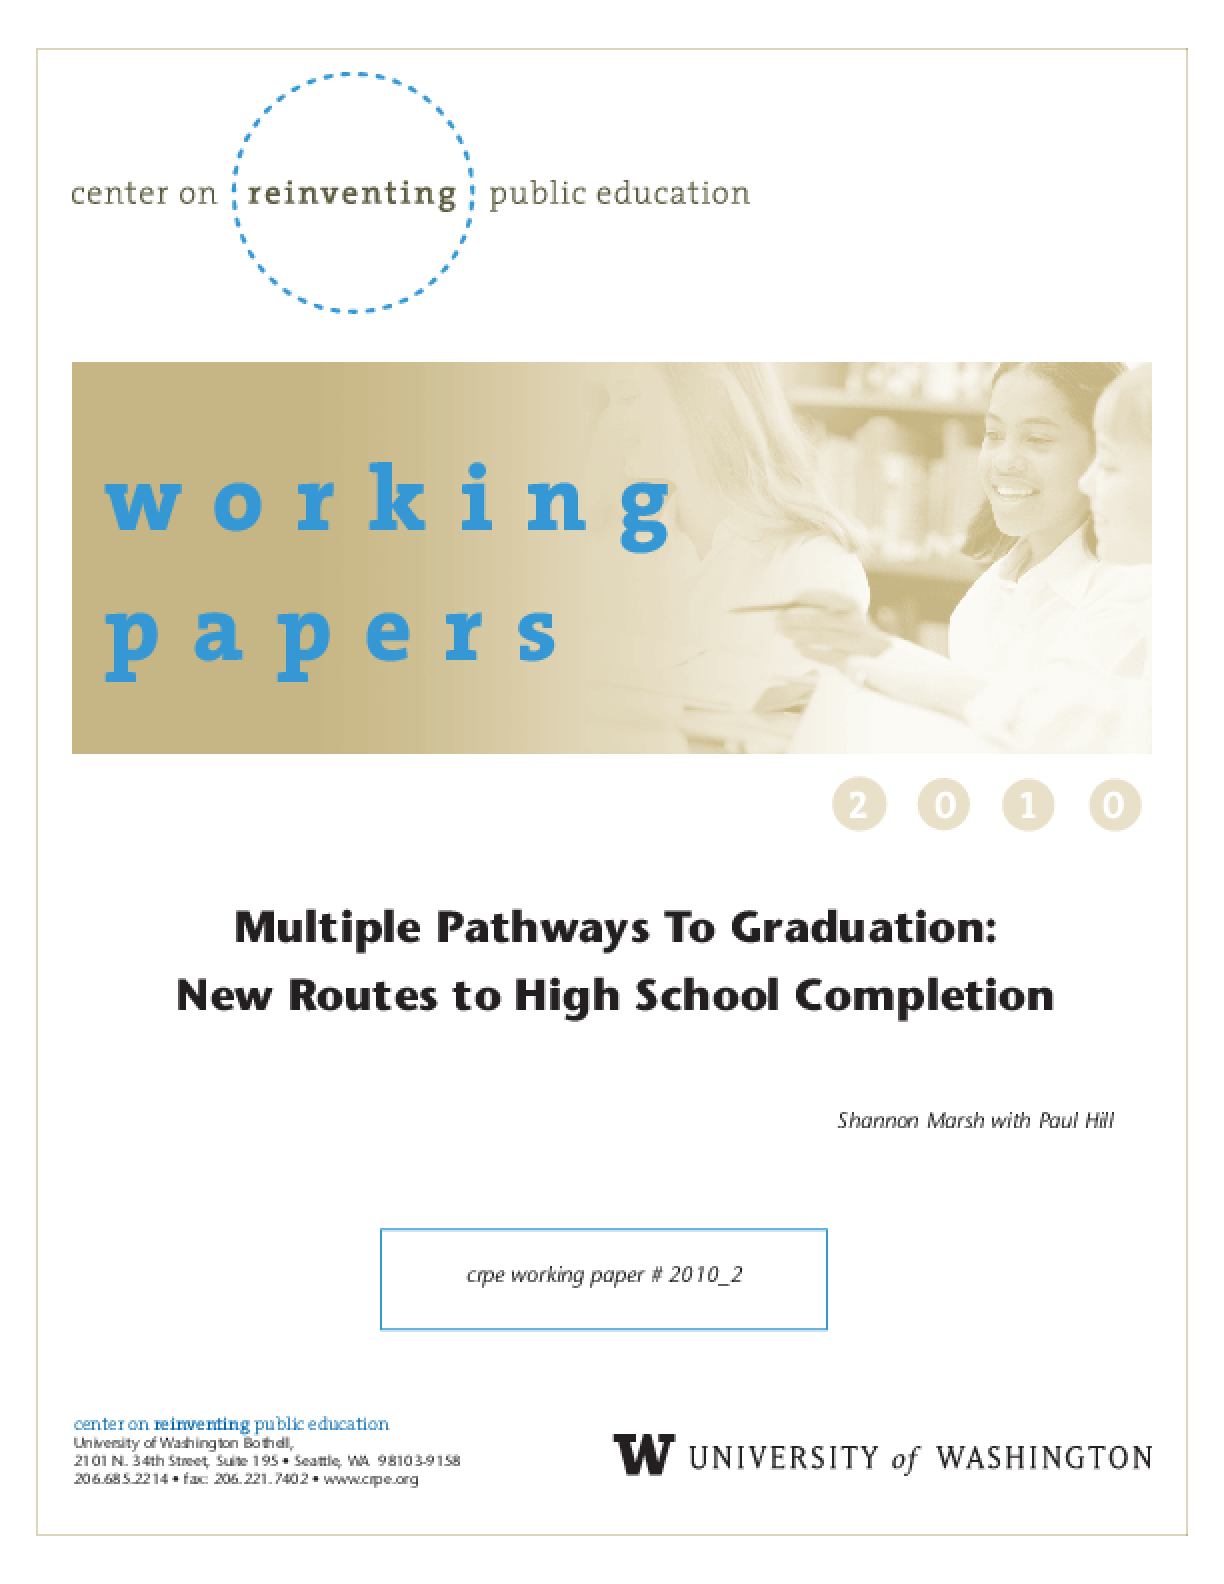 Multiple Pathways to Graduation: New Routes to High School Competition